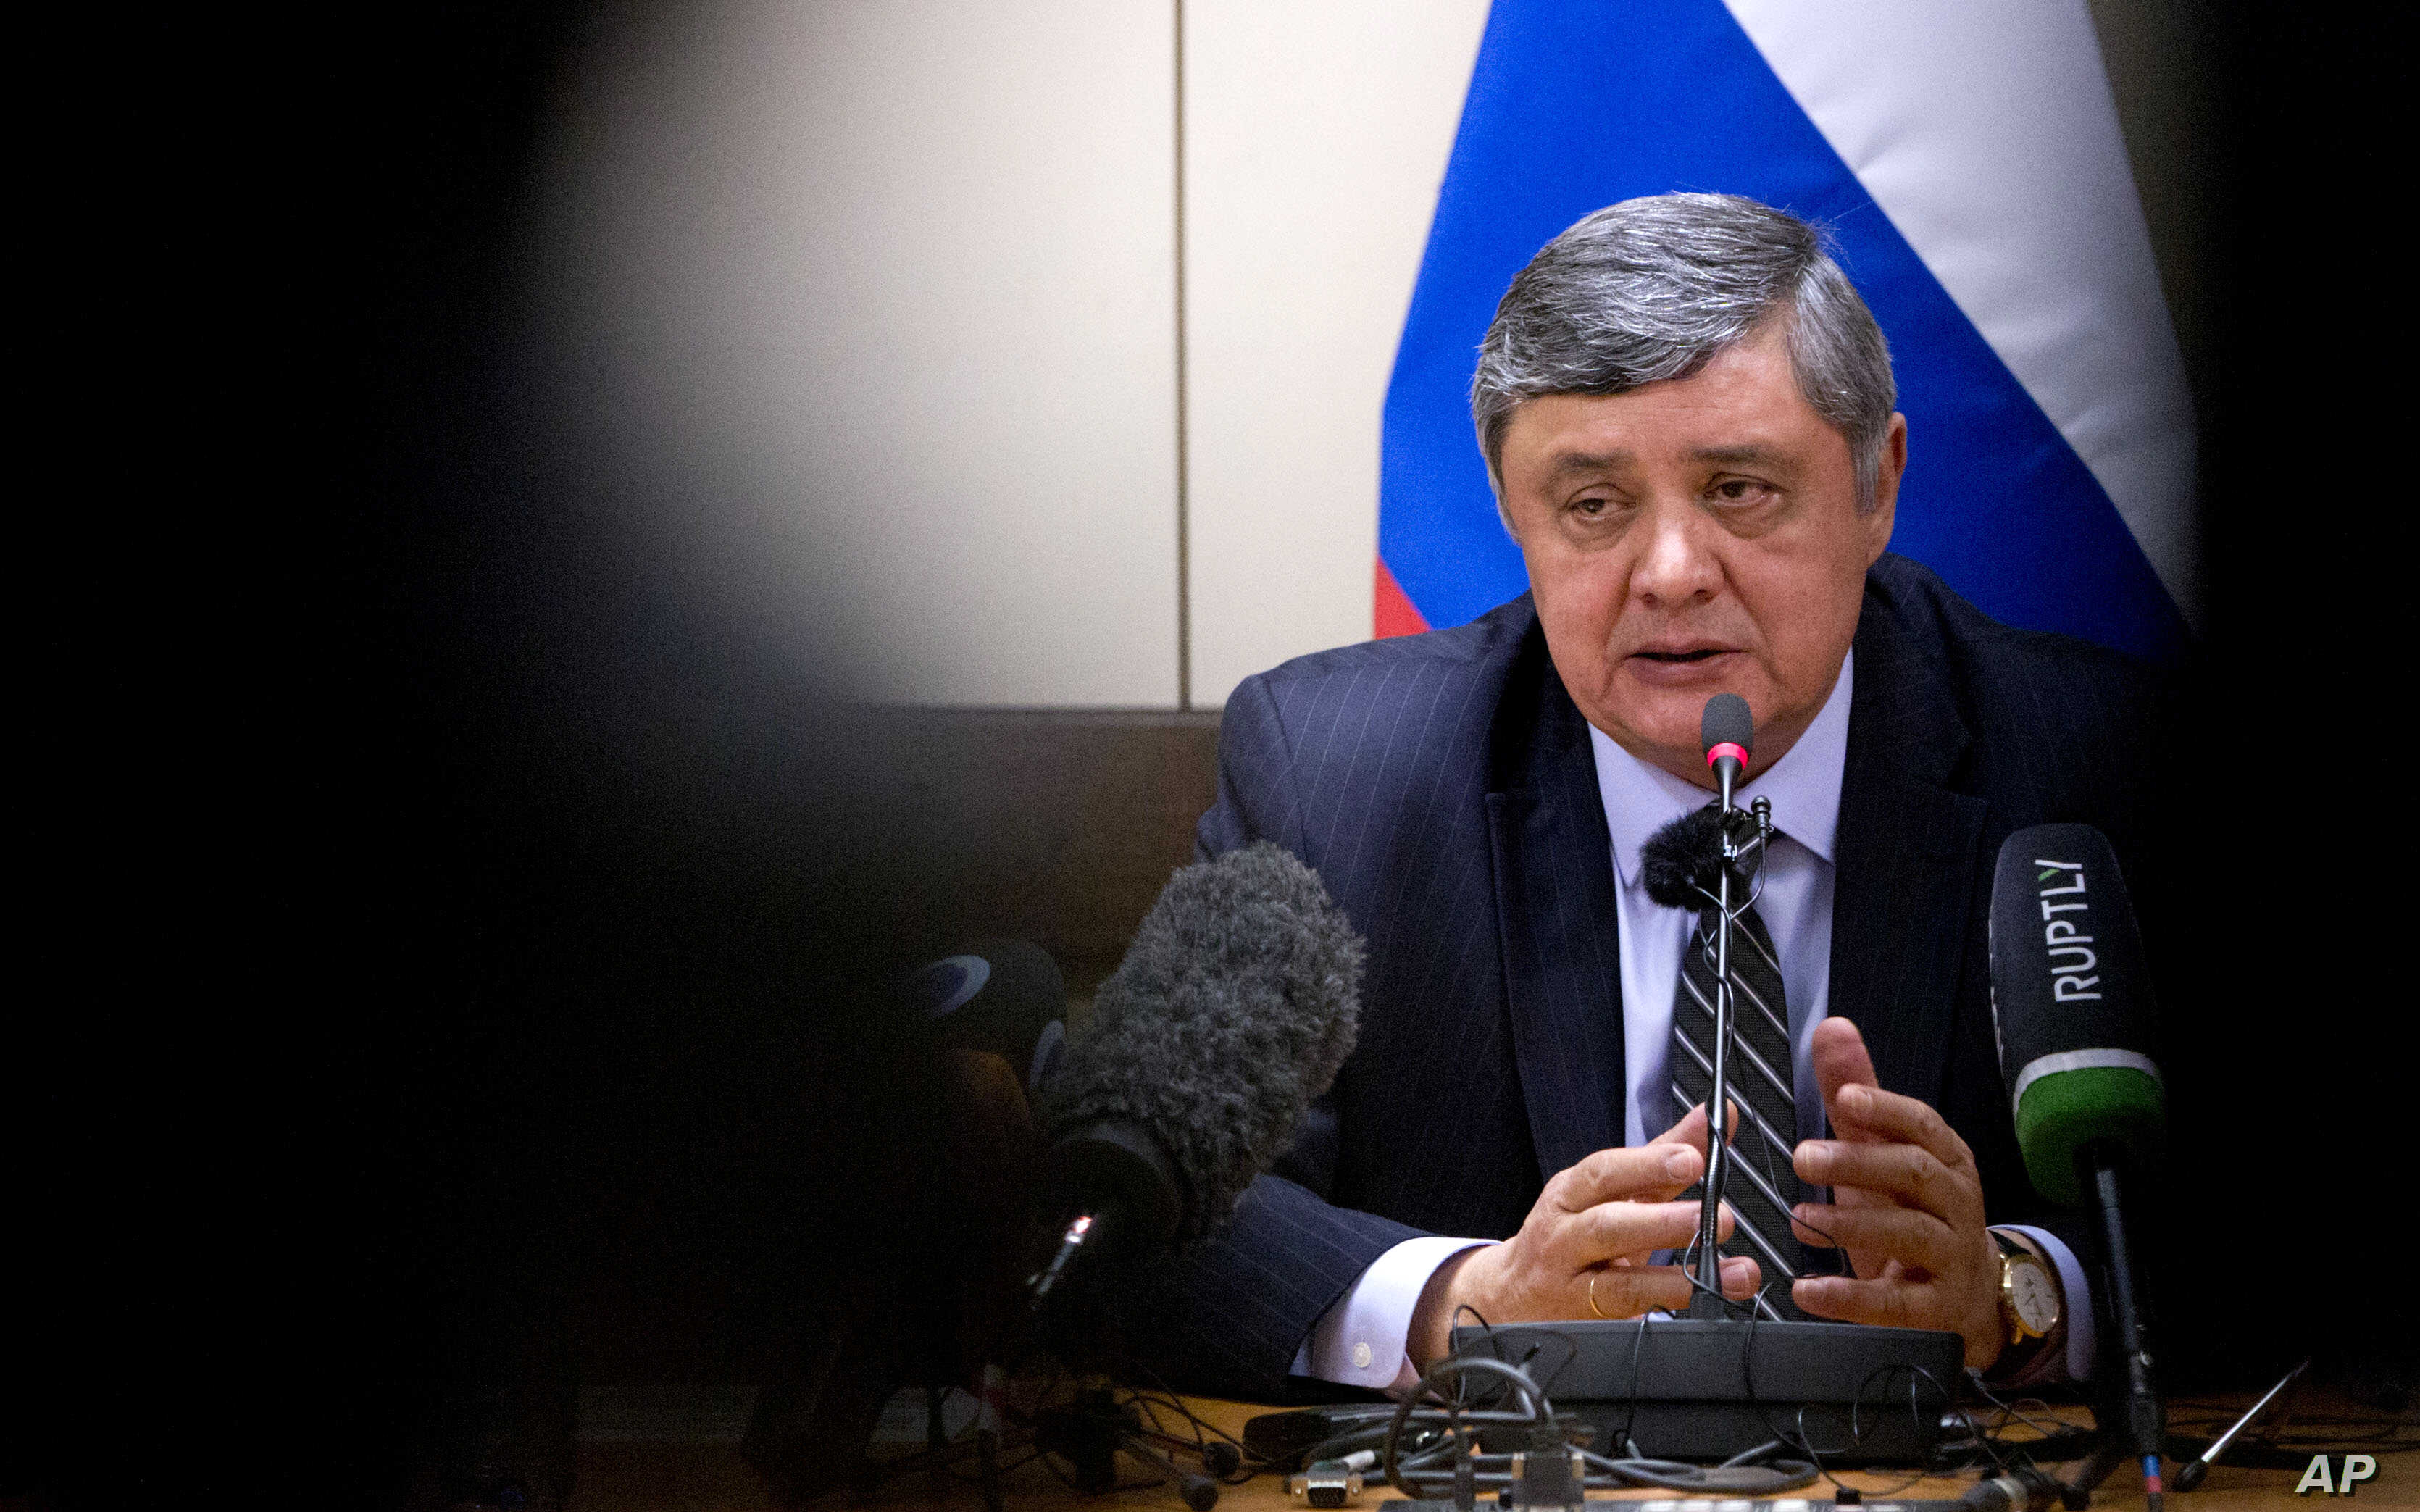 Russian President Vladimir Putin's special envoy for Afghanistan Zamir Kabulov speaks during a press conference in Brussels, Belgium, Oct. 26, 2017.